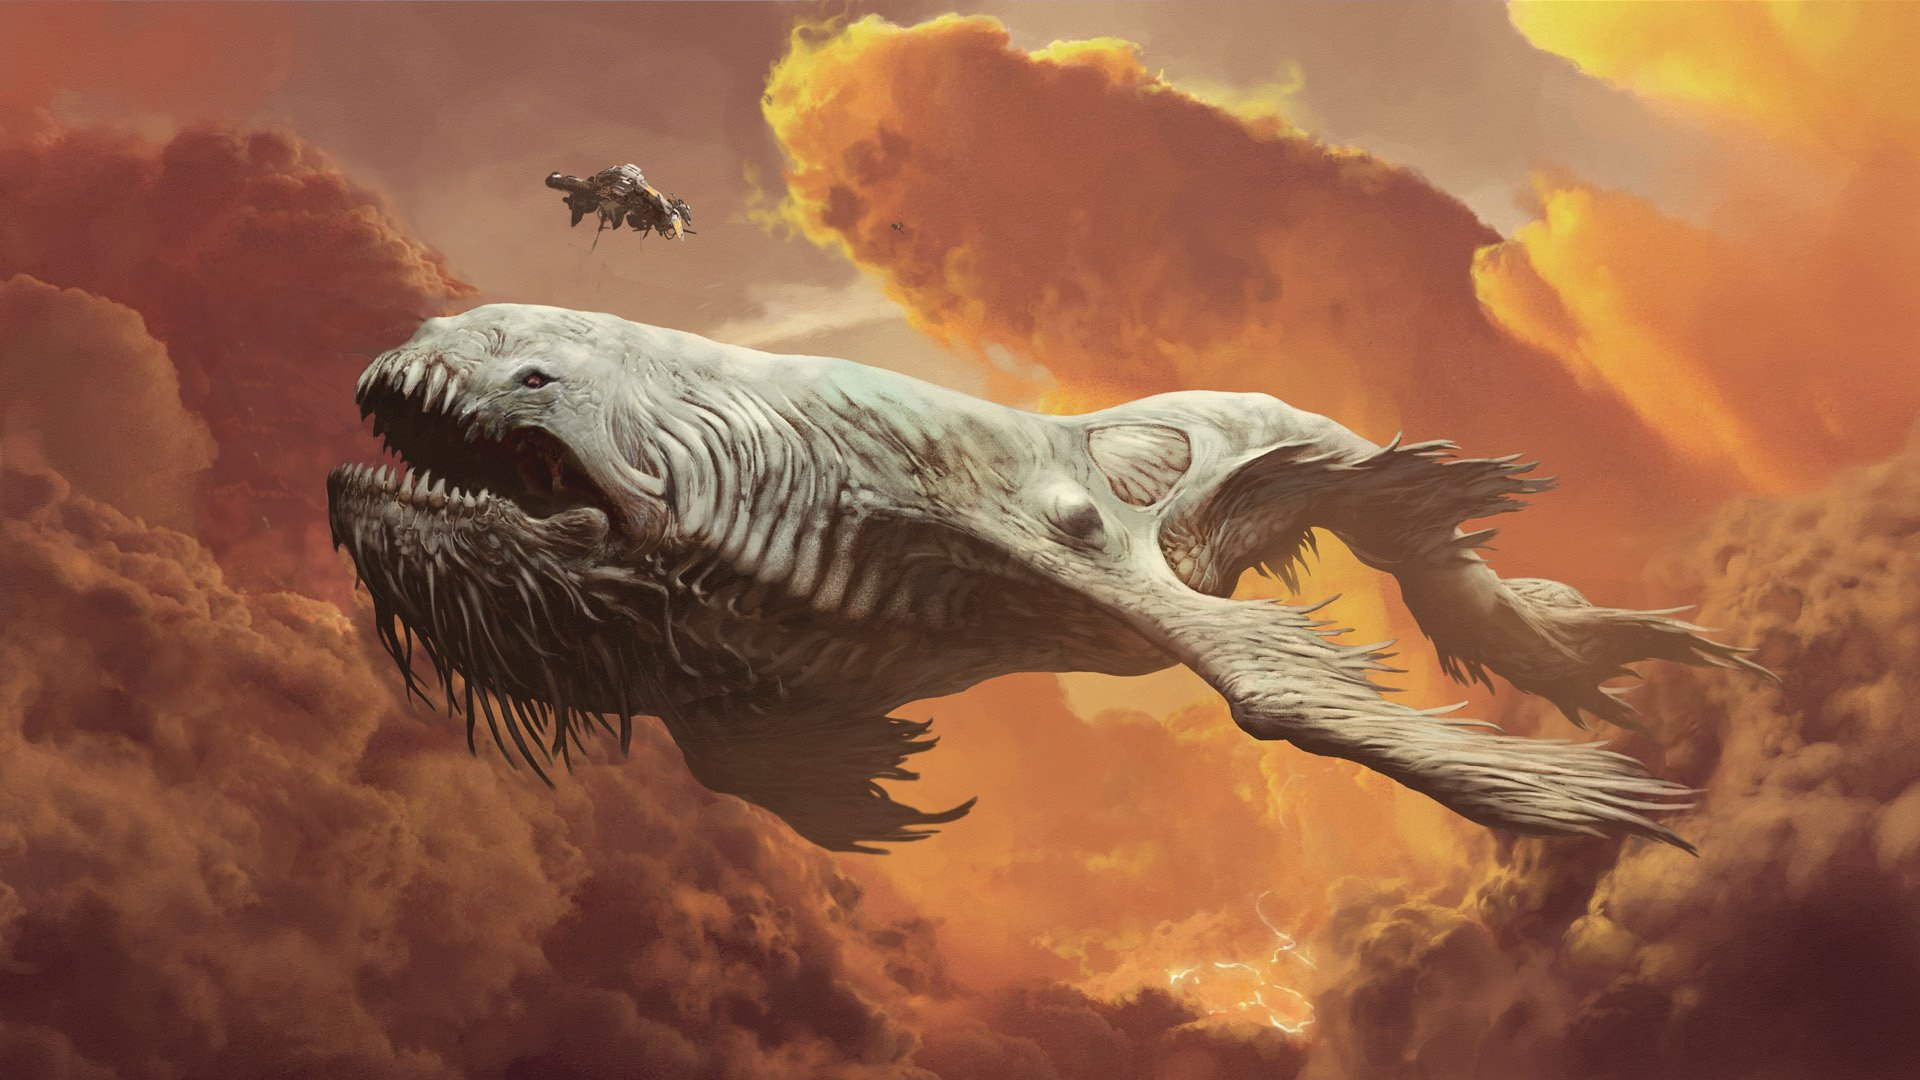 'The Leviathan' Teaser Trailer and Concept Art